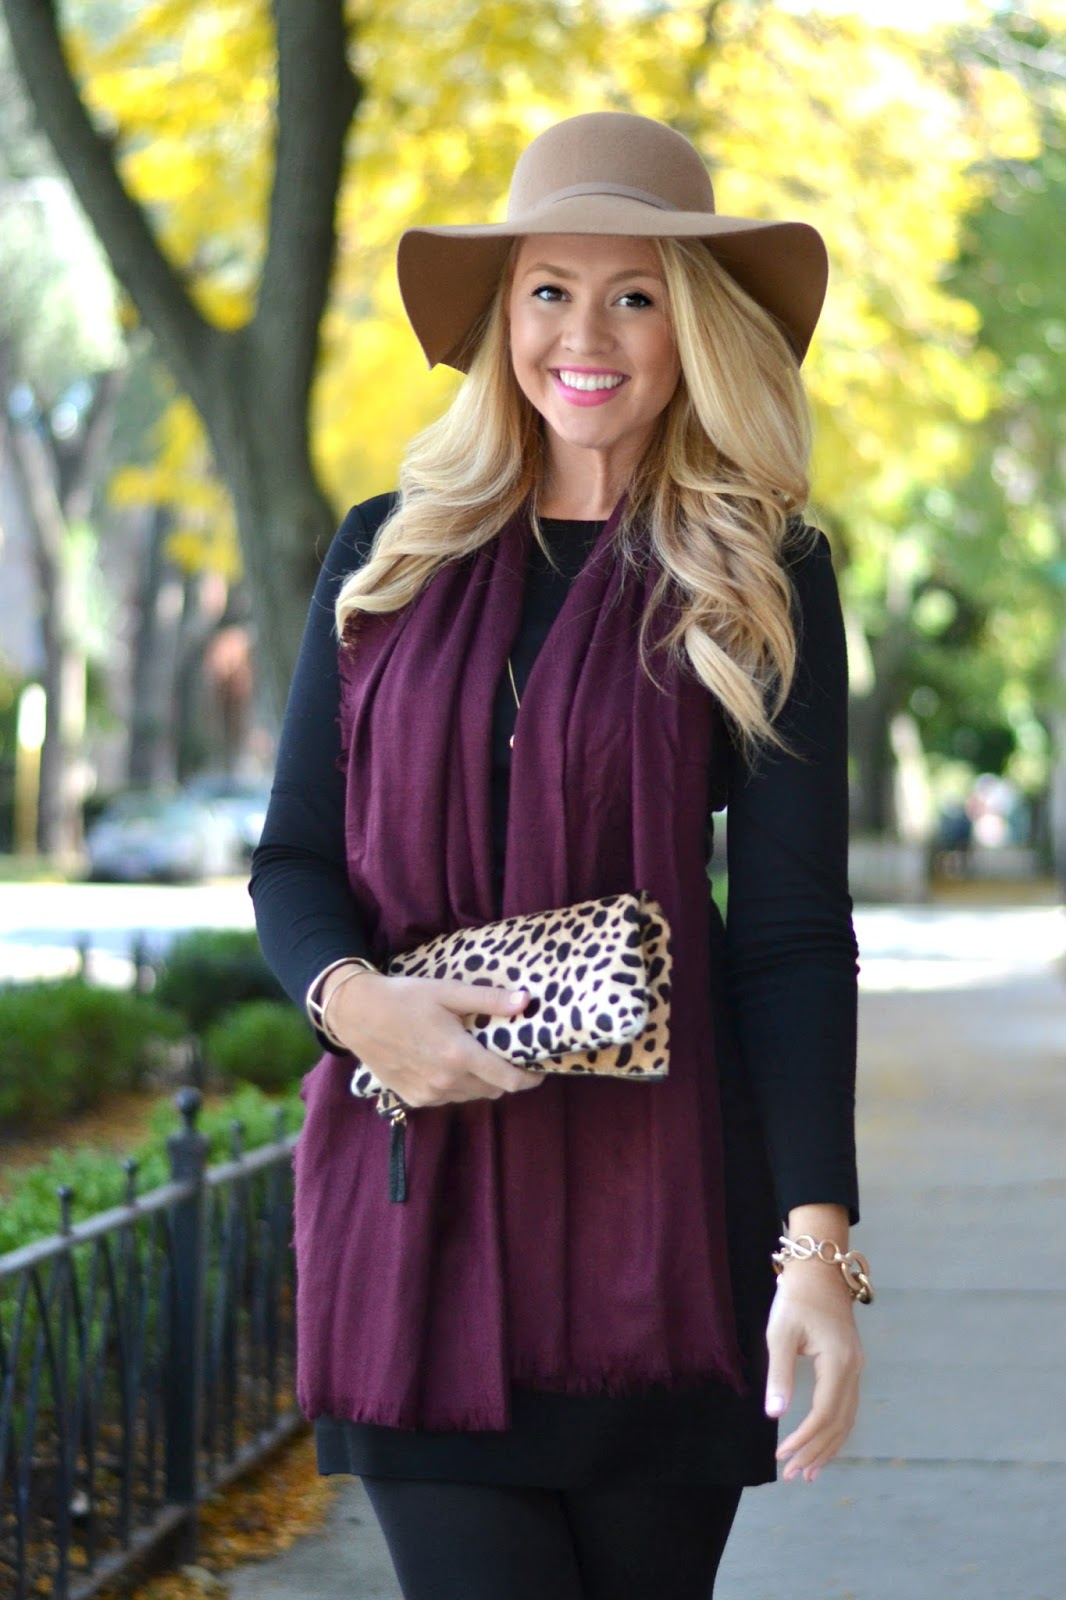 fall-outfit-idea-with-hat-and-scarf